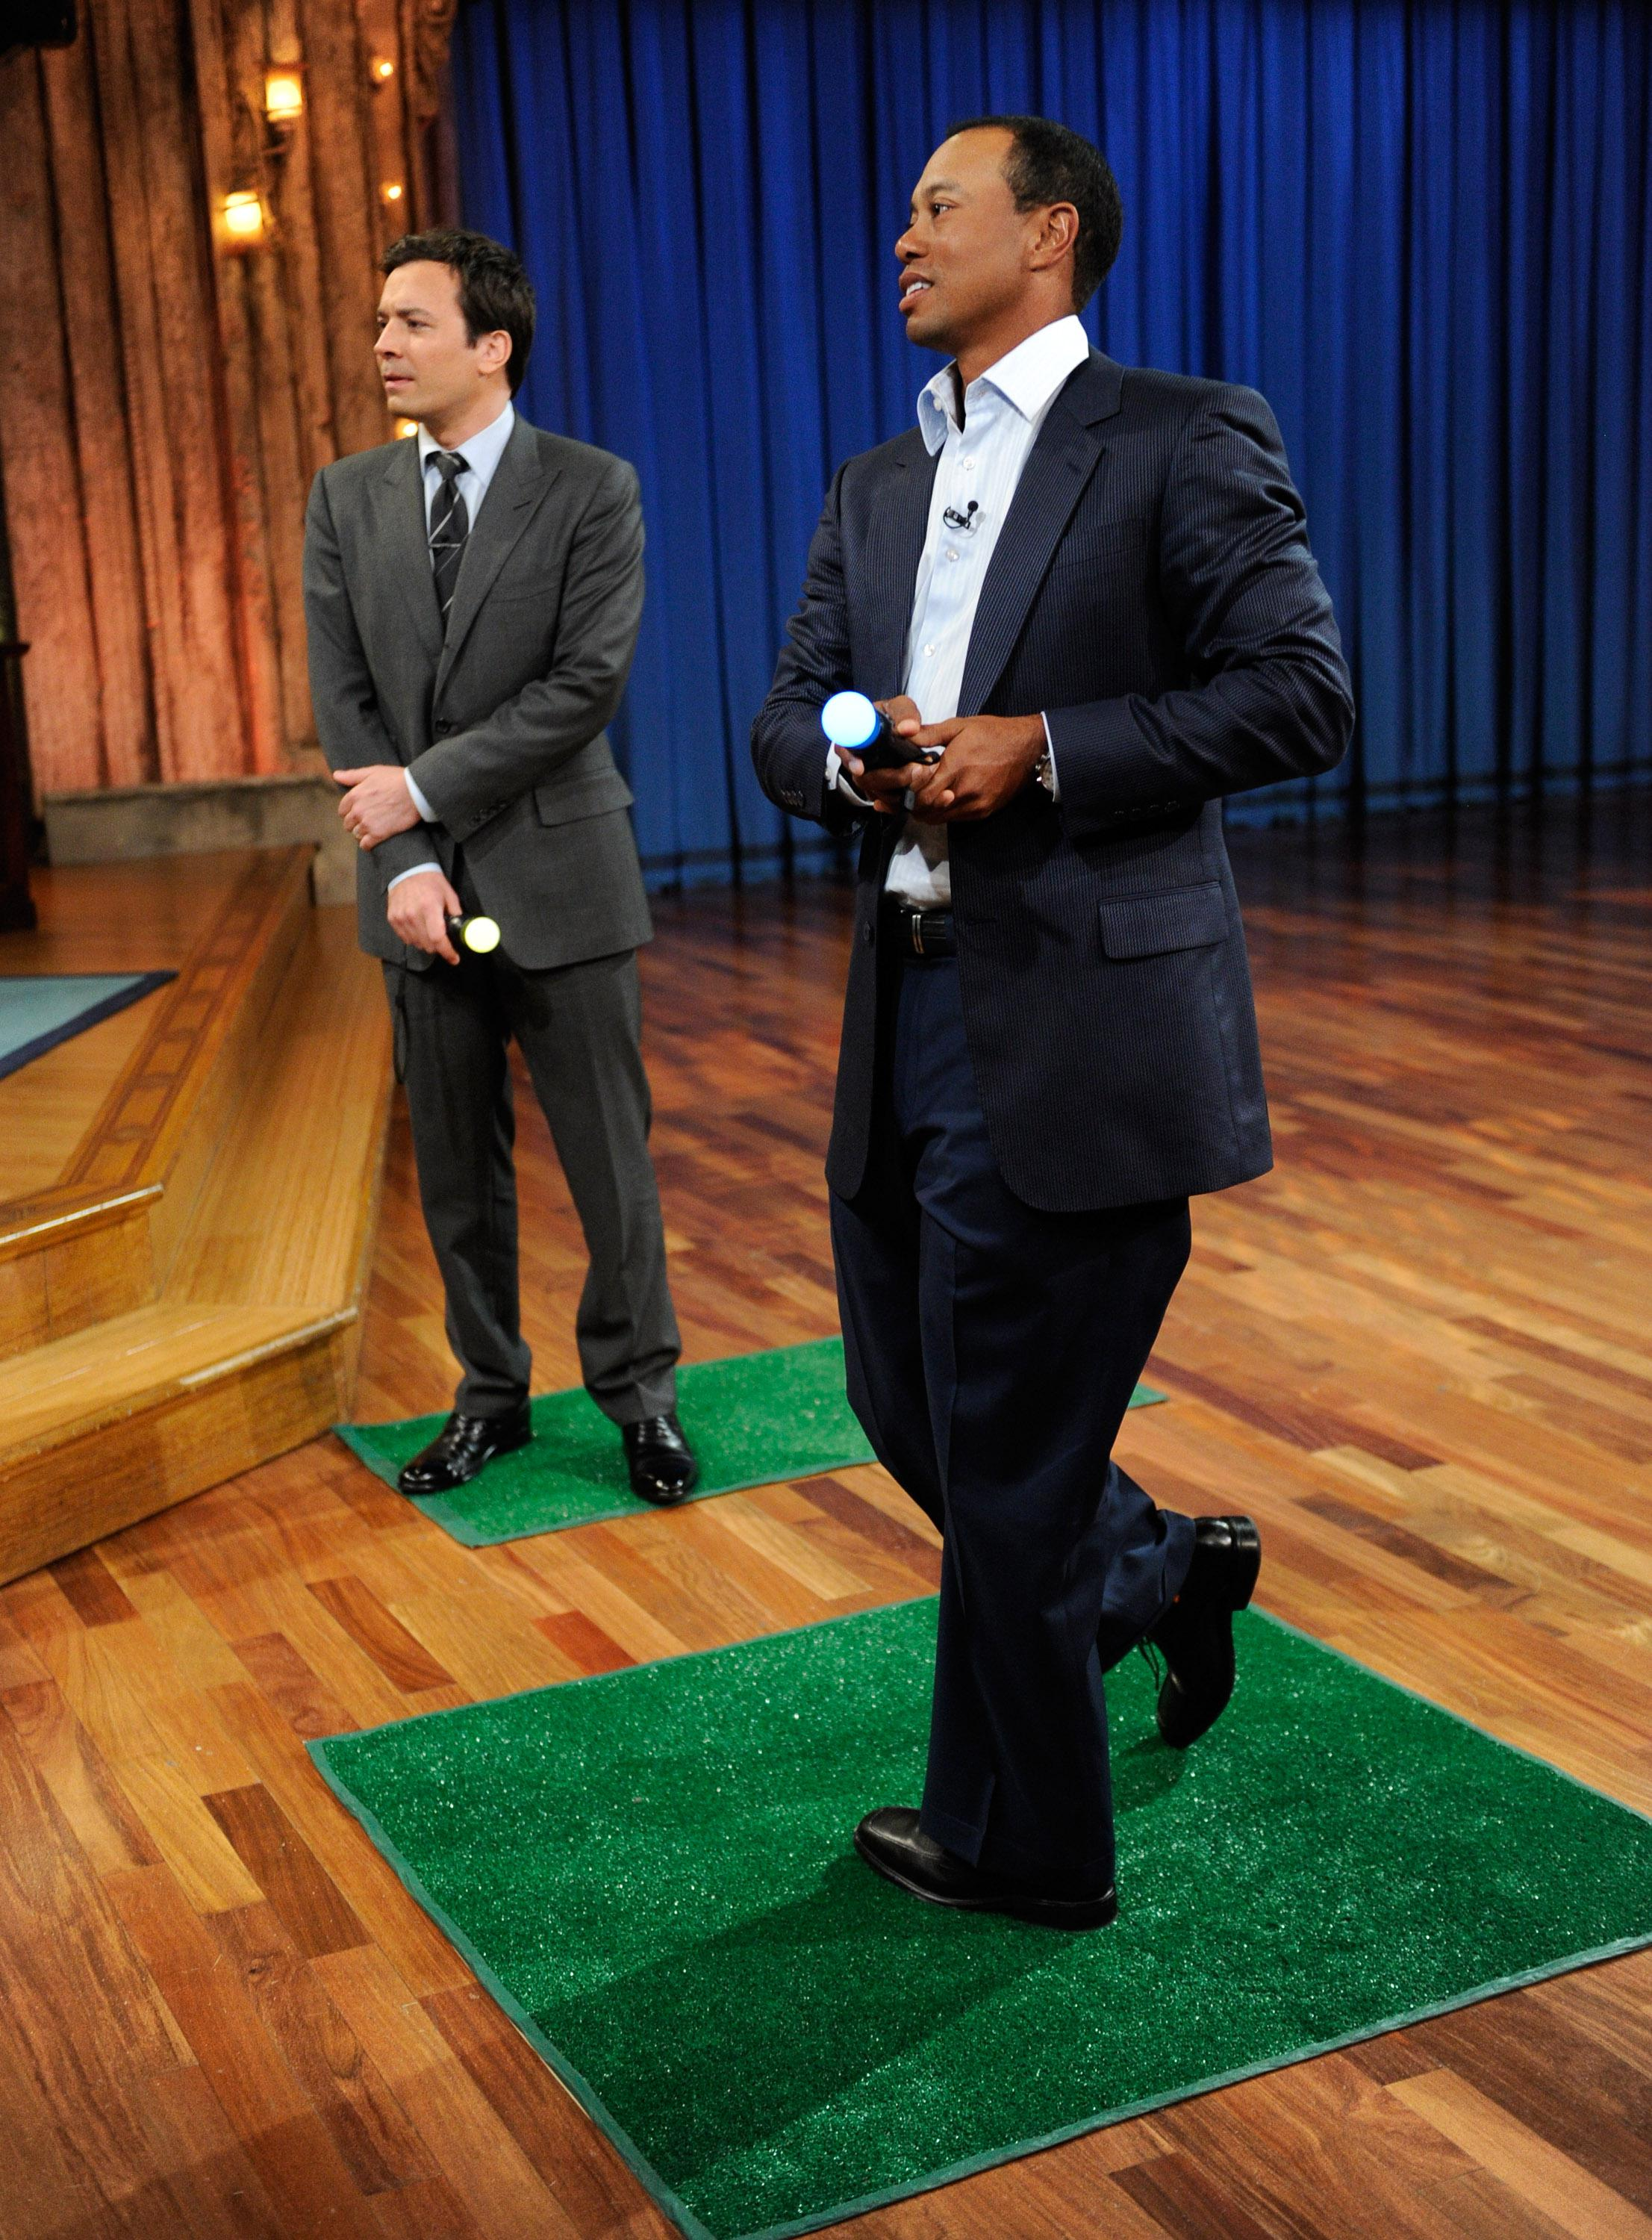 Celebrities Visit 'Late Night With Jimmy Fallon' - March 16, 2011